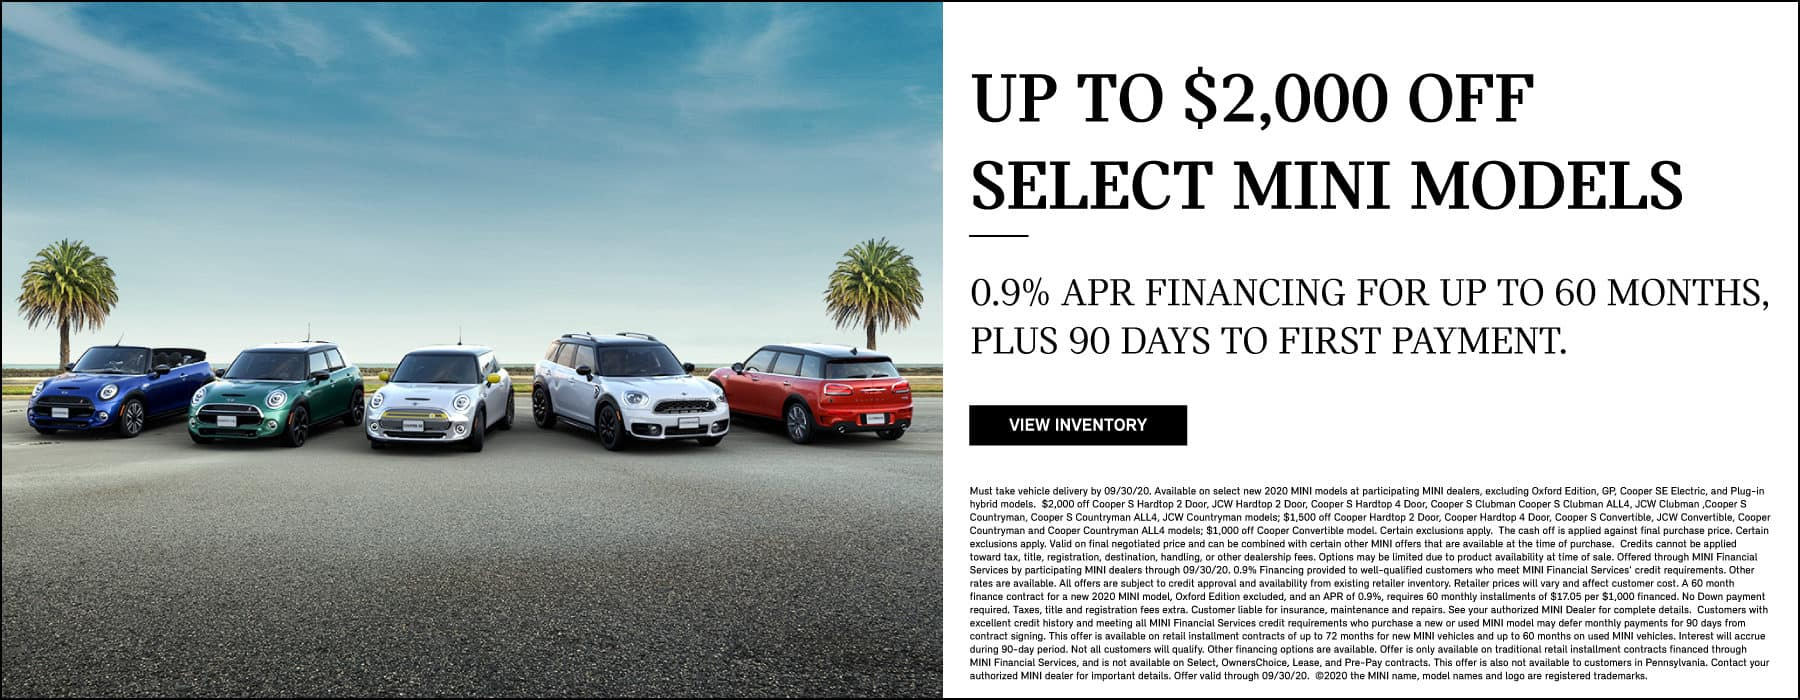 up to $2,000 Off Select MINI Models, 0% APR Financing for up to 60 months, plus 90 days to first payment through 9/30/20. View Inventory